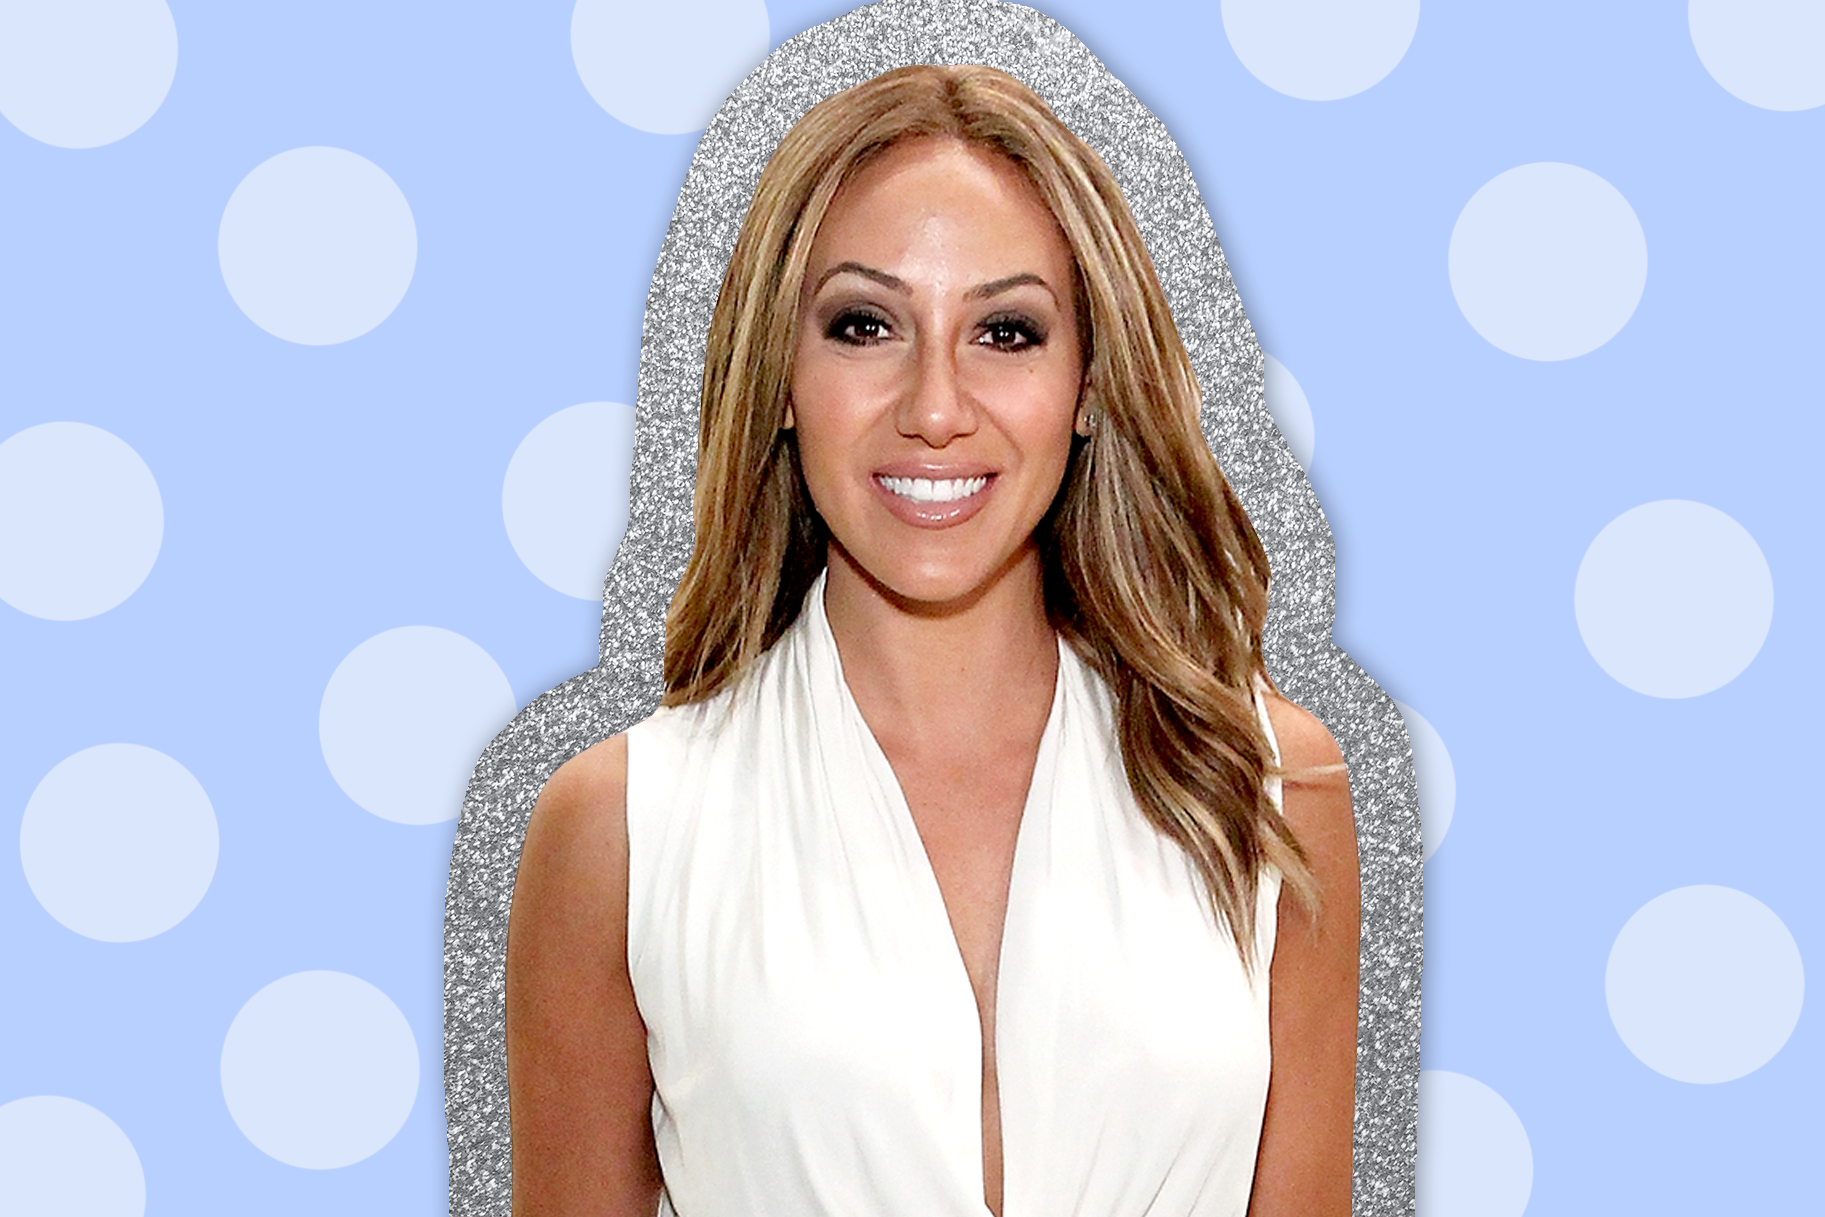 Lookbook Melissa Gorga Promote